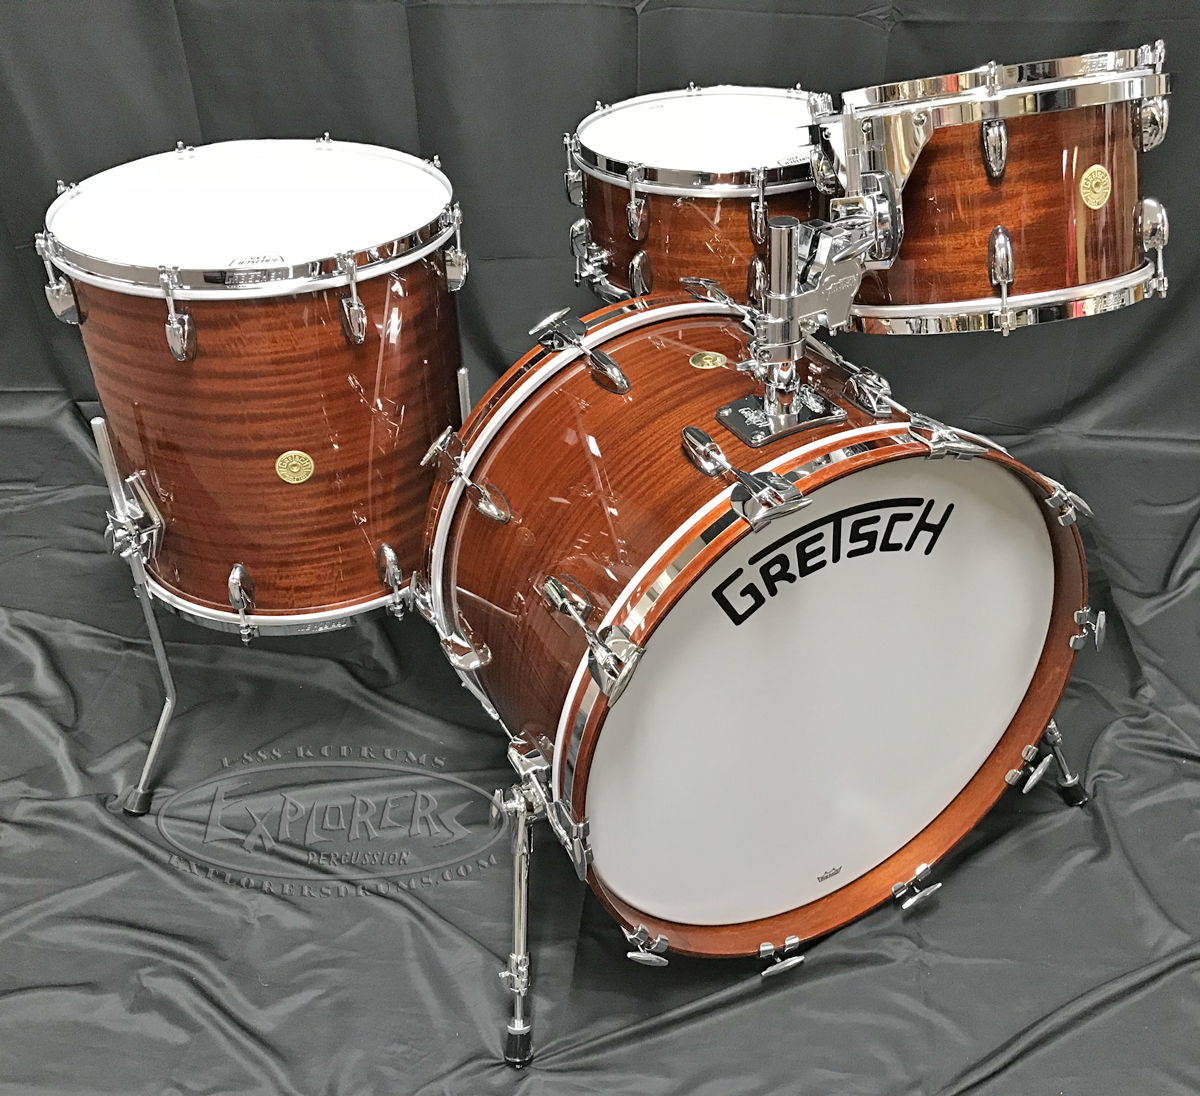 gretsch drum set broadkaster 135th anniversary 4 piece shell pack in classic mahogany. Black Bedroom Furniture Sets. Home Design Ideas